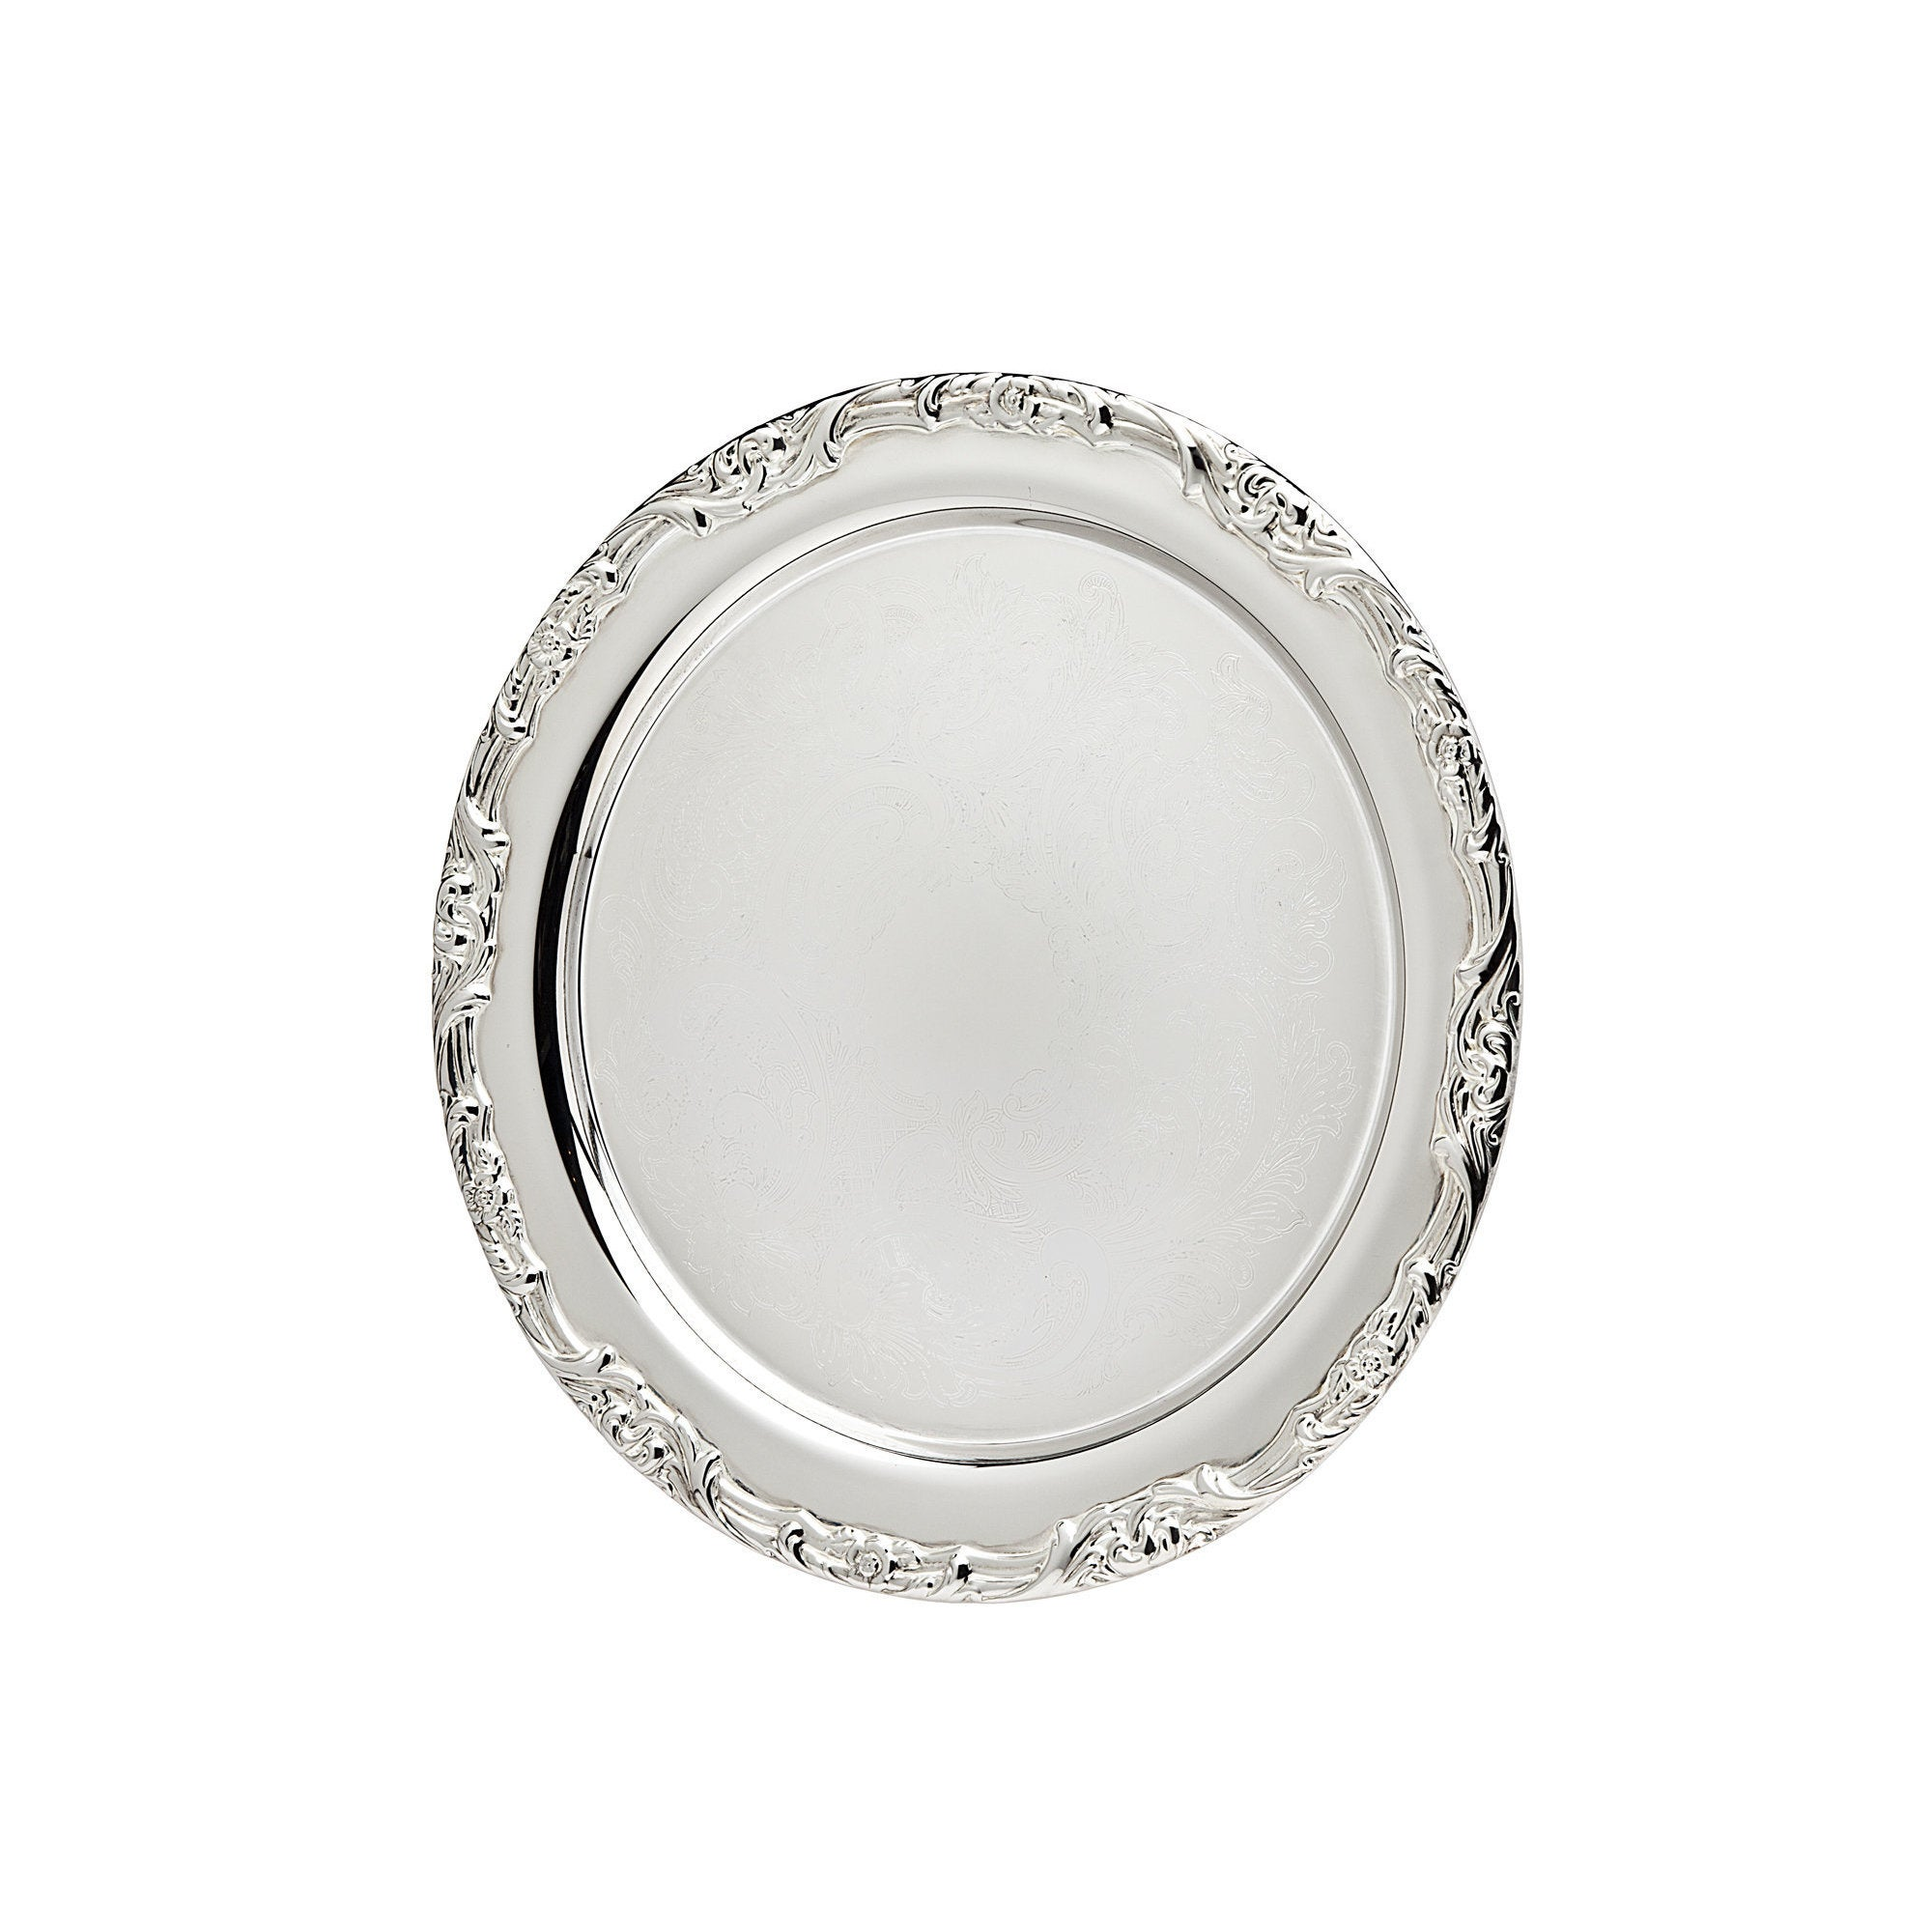 Godinger Silver Metal 16.5-inch Floral Design Round Tray ...